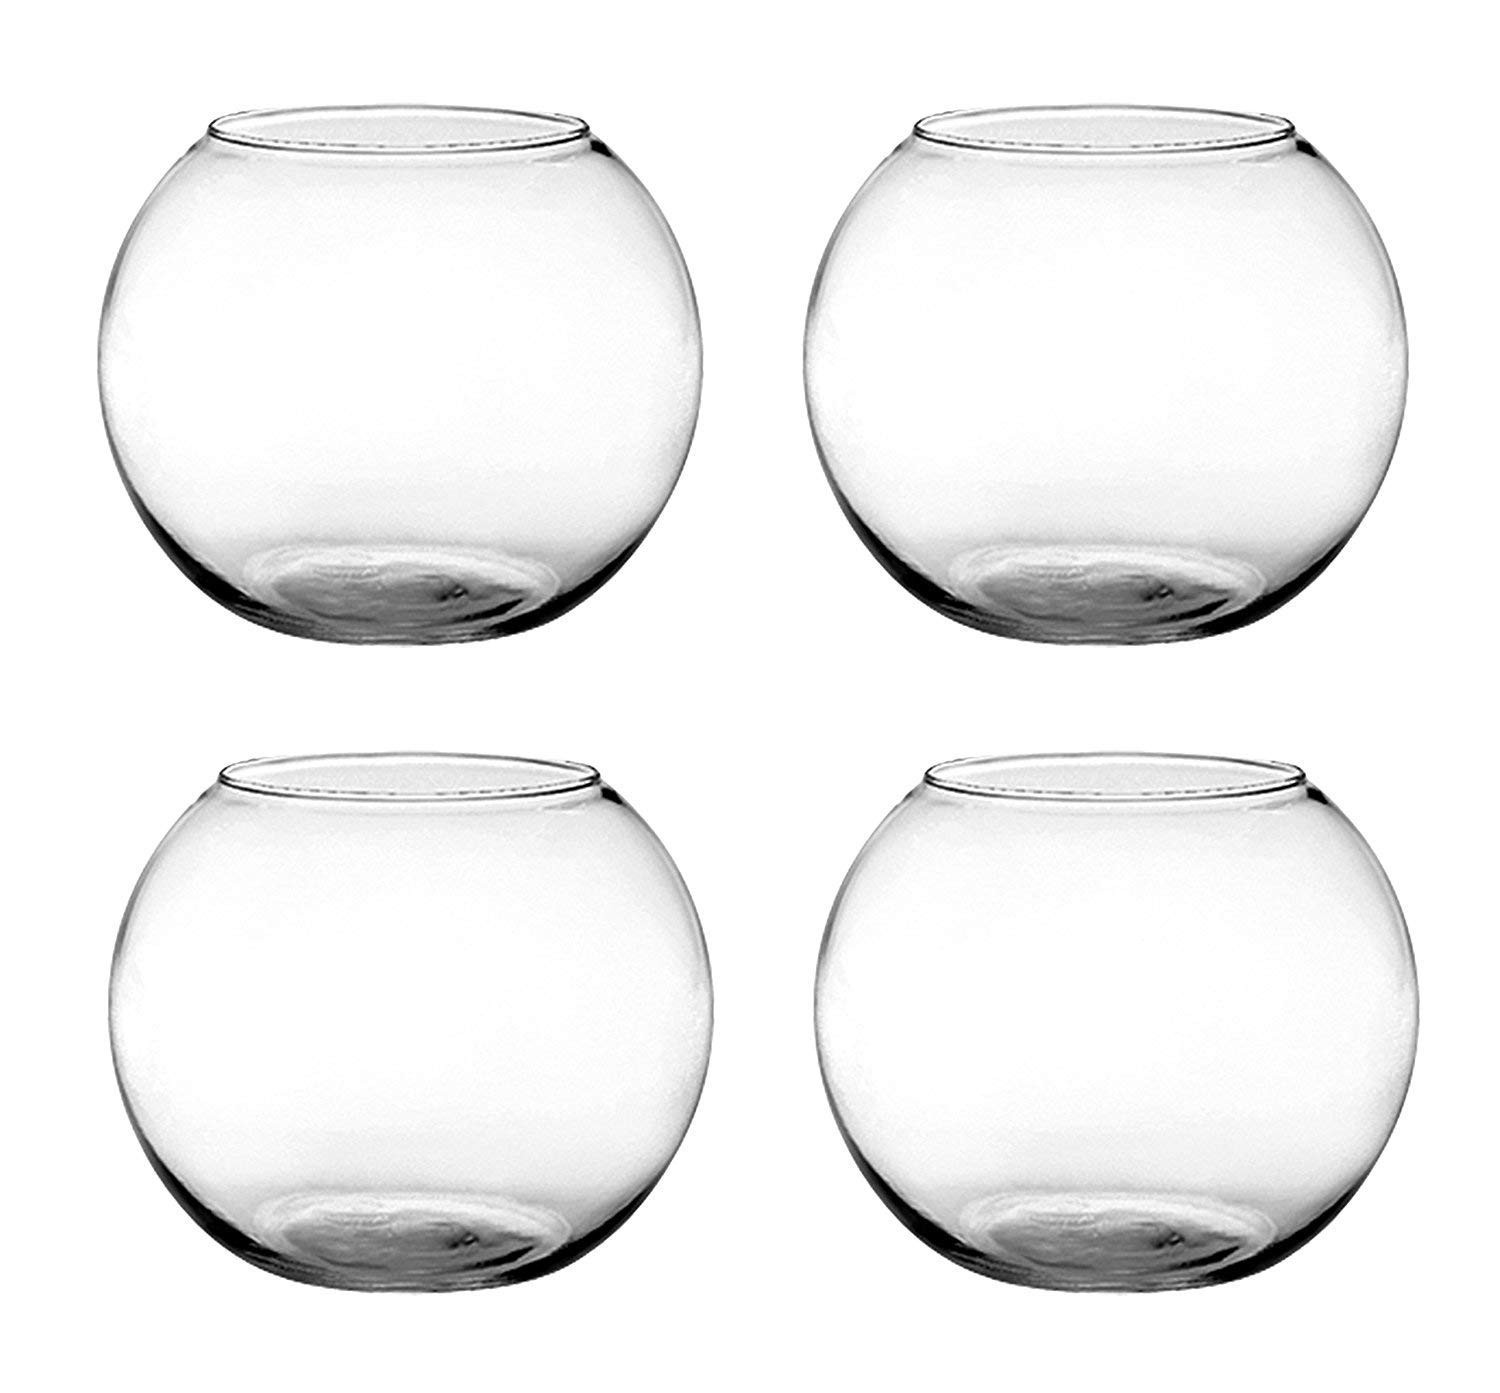 24 tall cylinder vases of amazon com floral supply online set of 4 6 rose bowls glass intended for amazon com floral supply online set of 4 6 rose bowls glass round vases for weddings events decorating arrangements flowers office